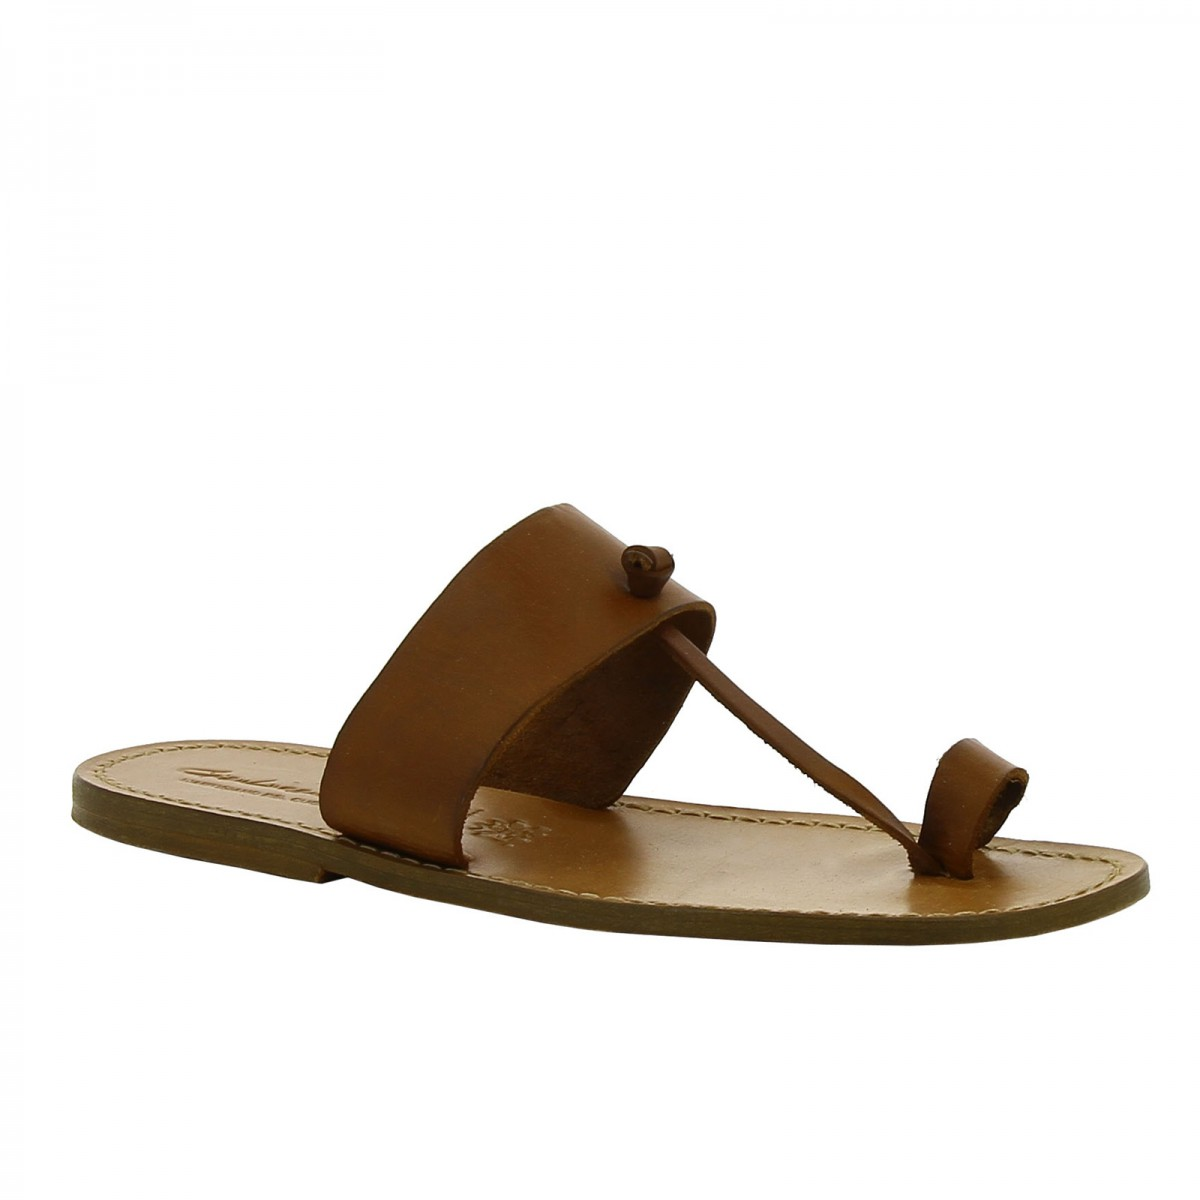 Tan leather toe loop sandals for men Handmade in Italy ...